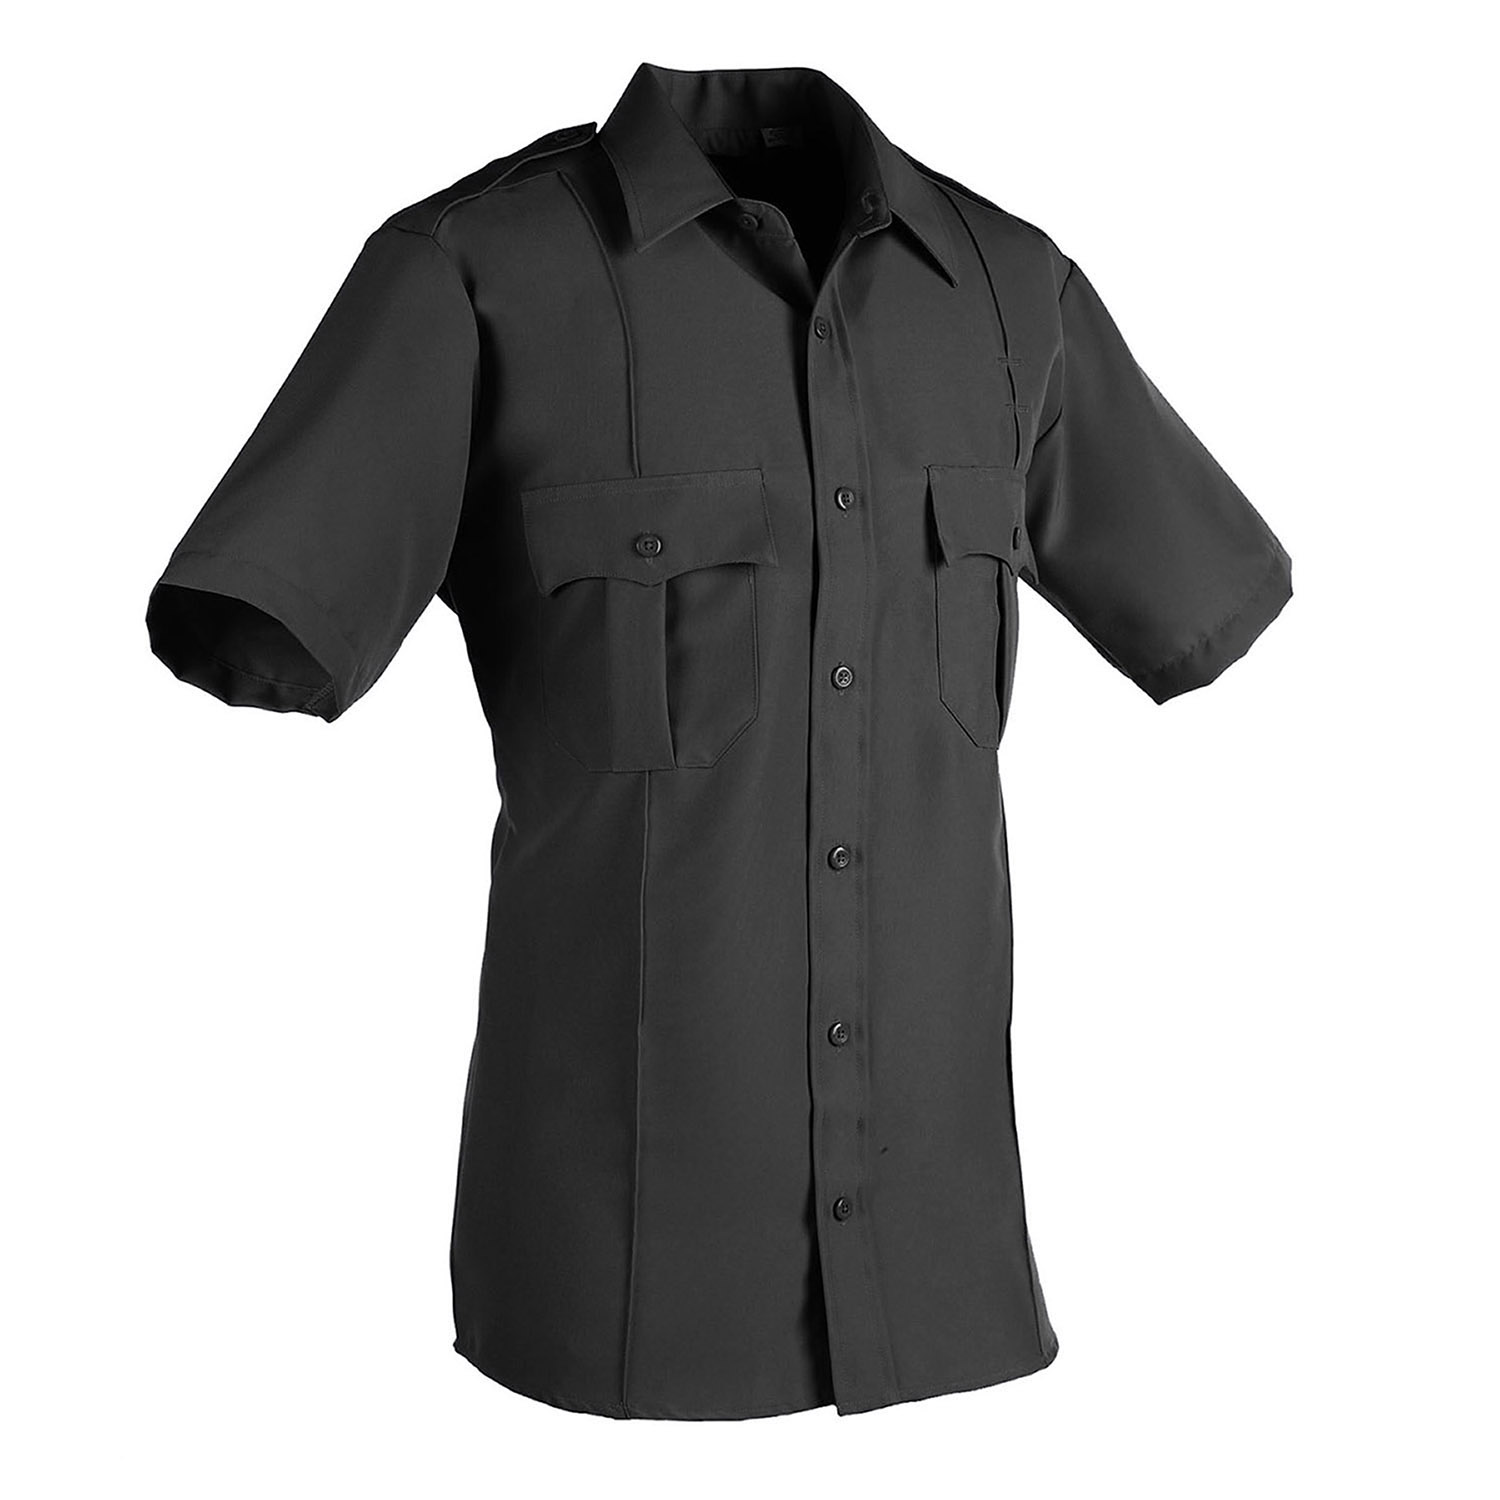 LawPro 100% Polyester Short Sleeve Shirt